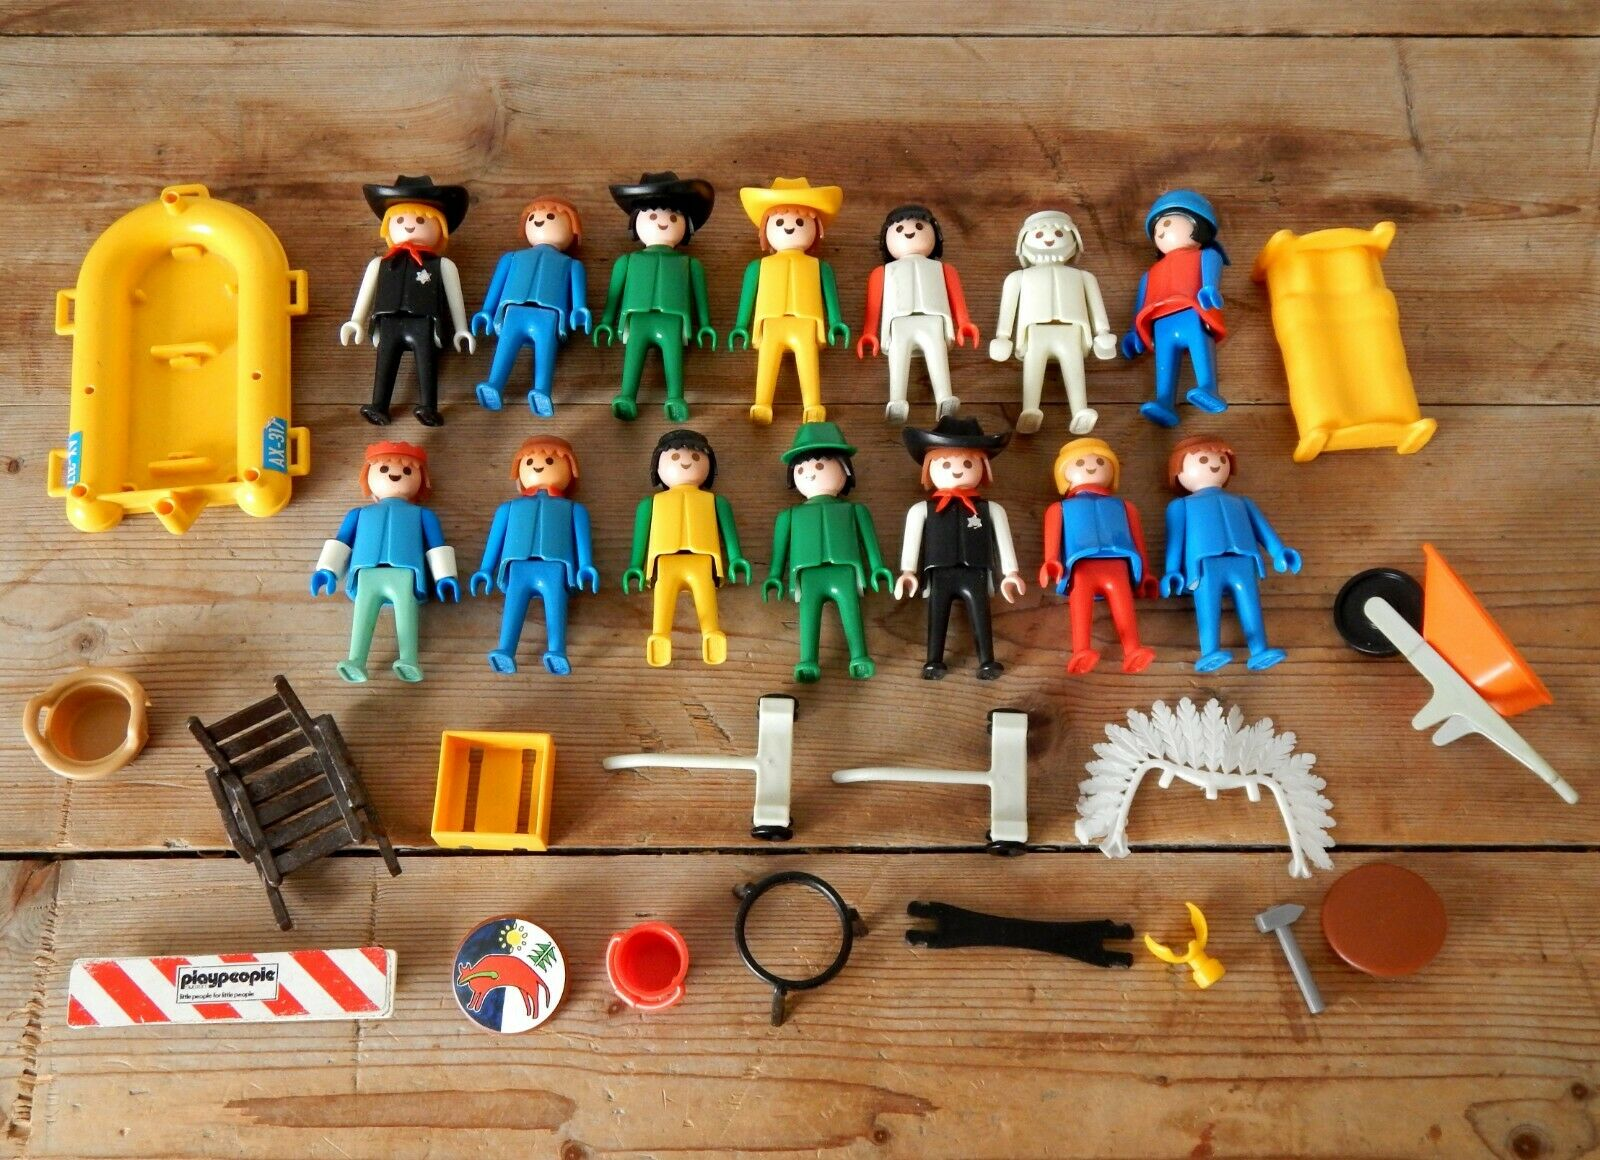 Vintage Vintage Vintage Mixed Lot 1970s Playmobil Playpeople Figures Toys Cowboys People 5636a4